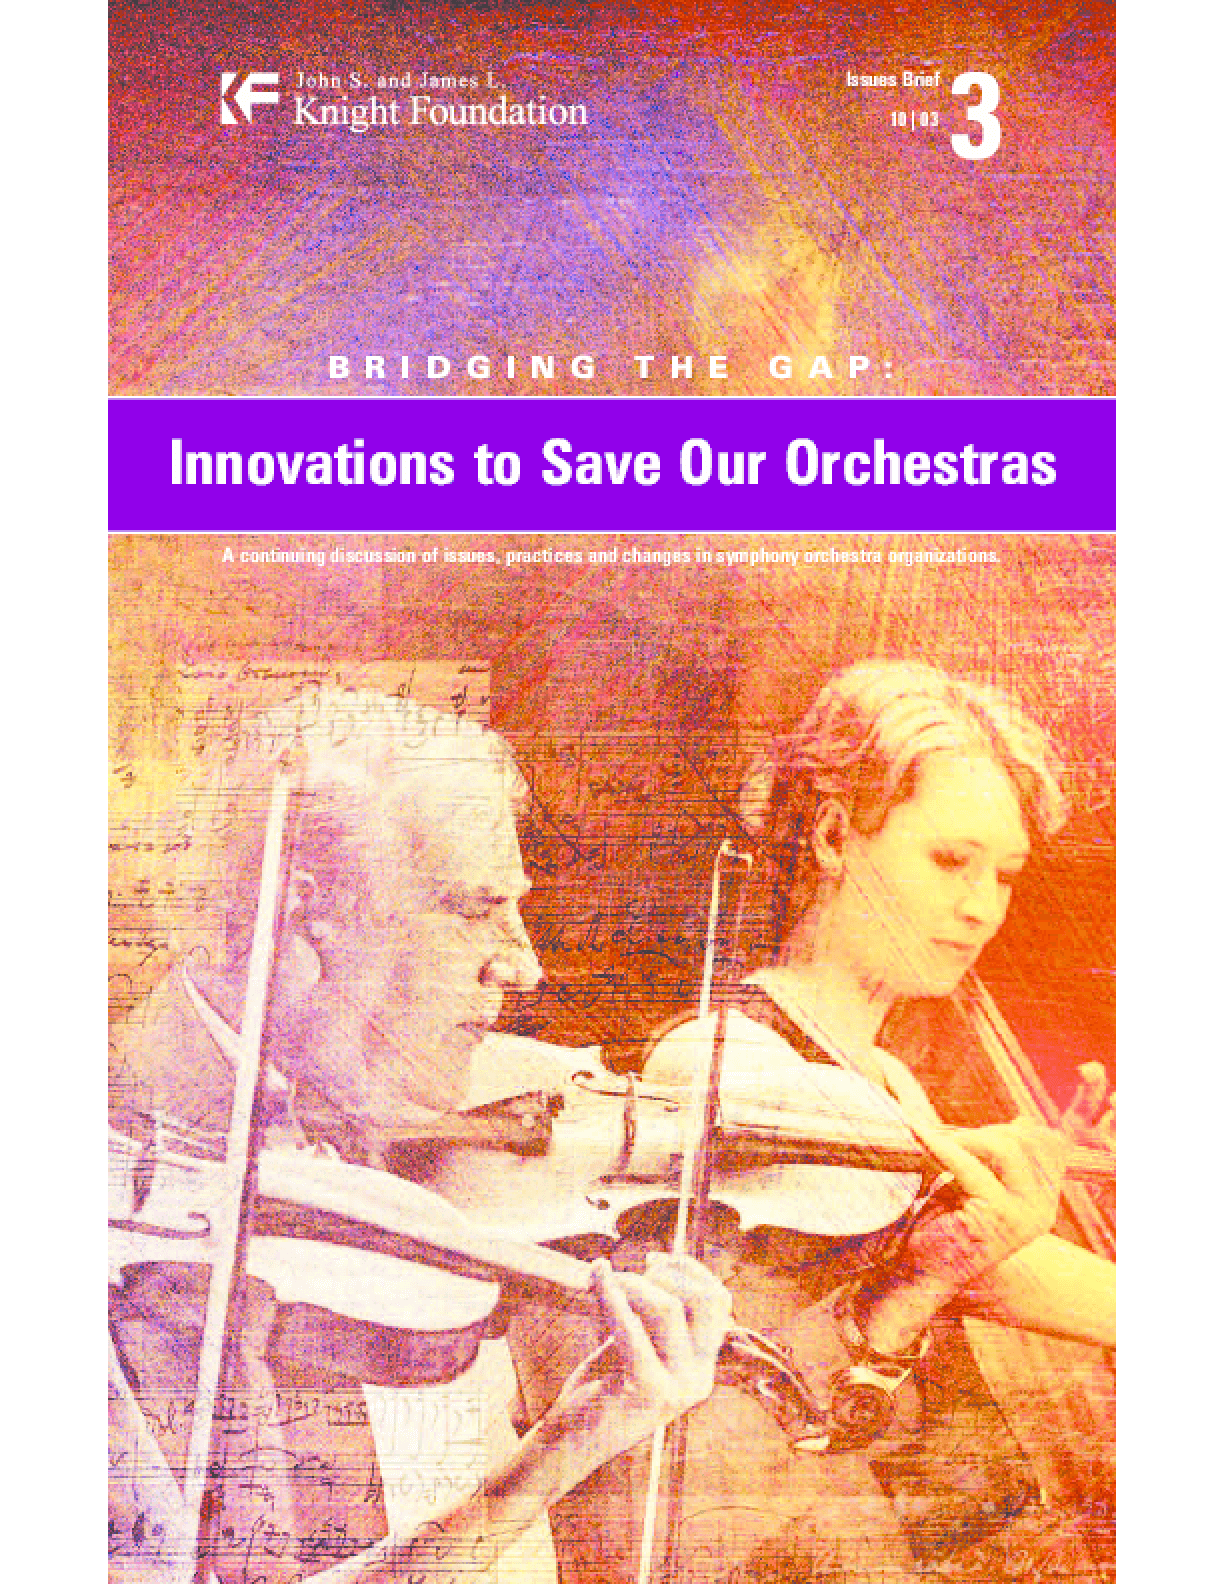 Bridging the Gap: Innovations to Save Our Orchestras